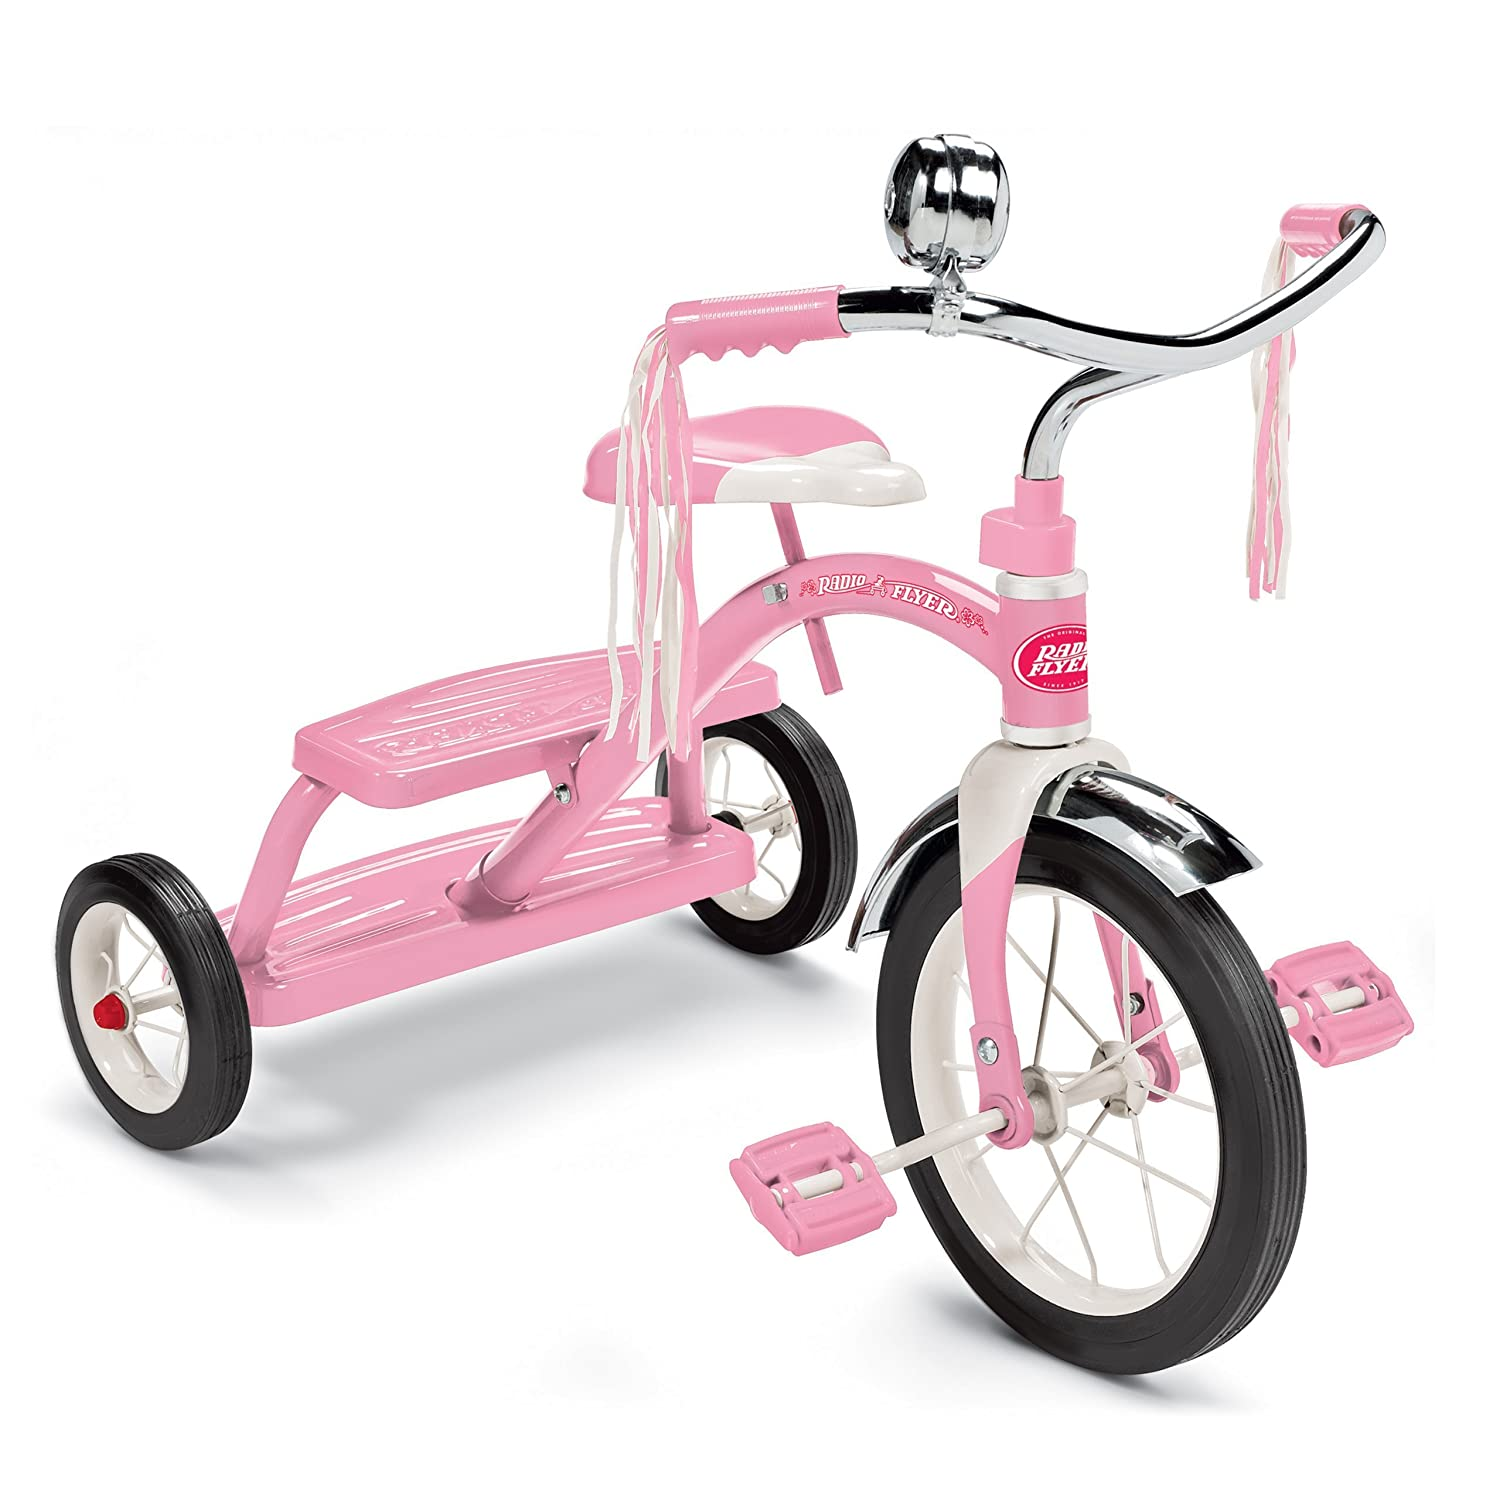 Radio Flyer Girls Classic Dual Deck Tricycle, Pink $39.00